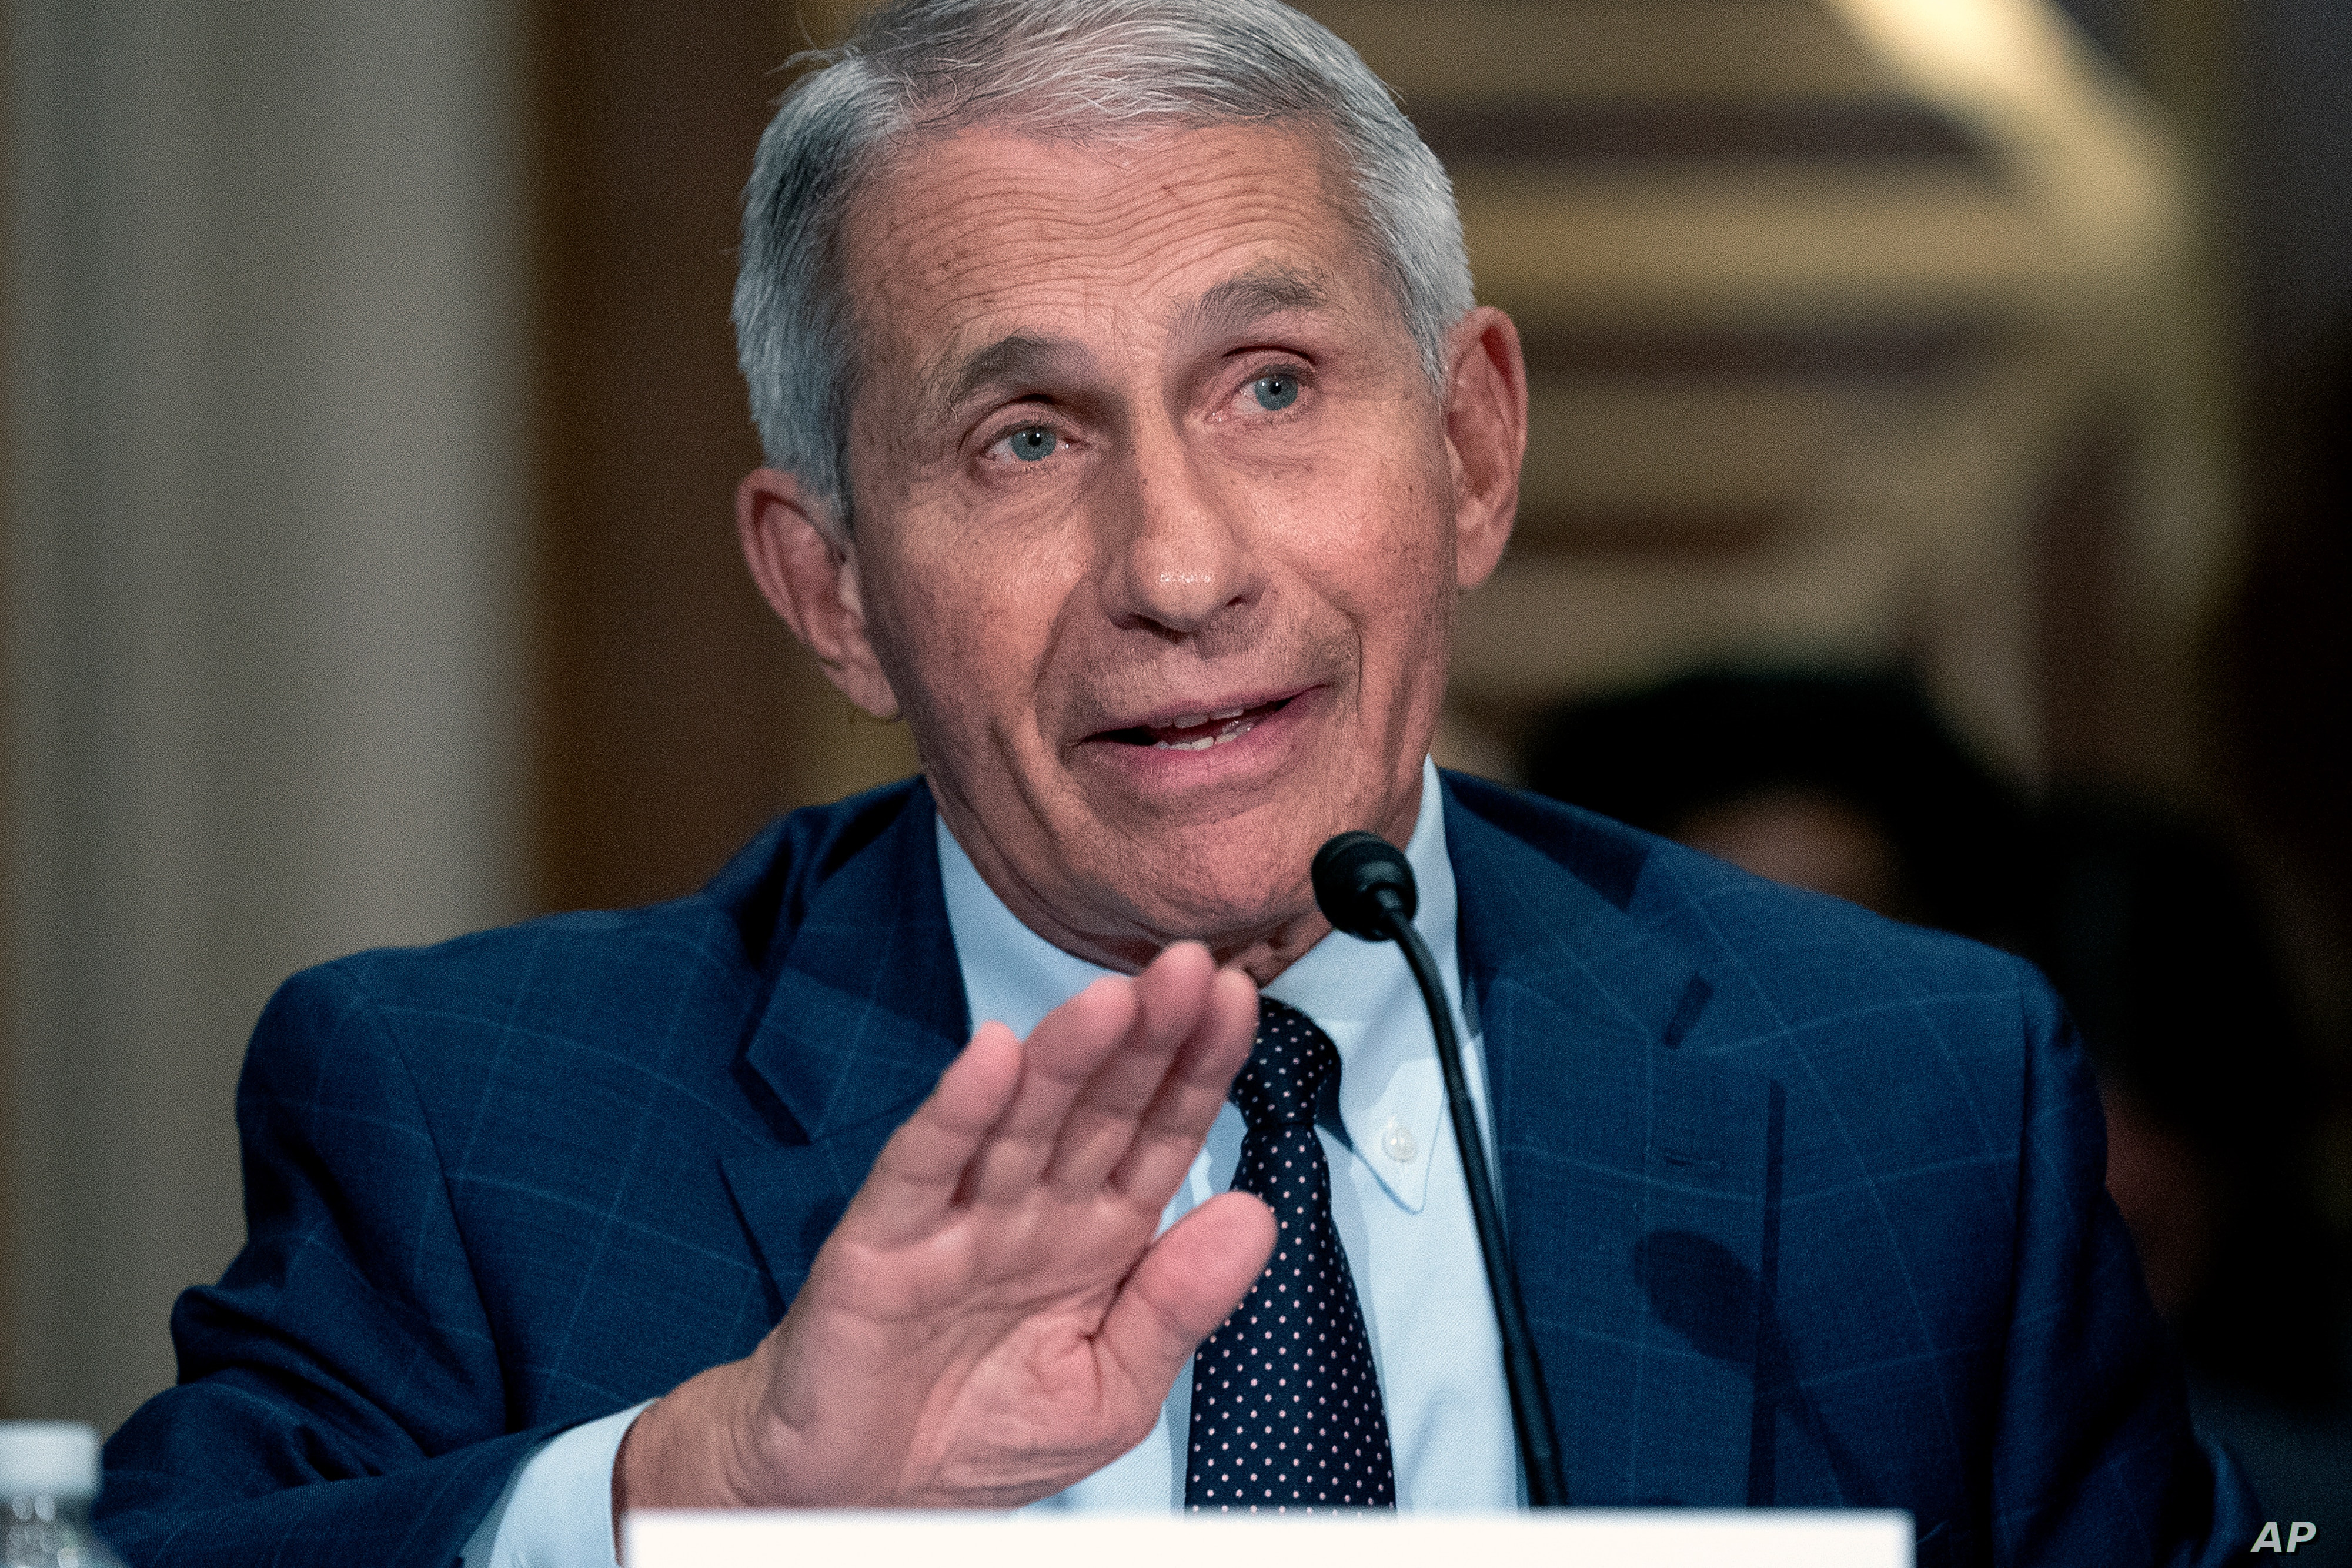 Man arrested for threatening to kill US health expert Dr. Fauci and his family